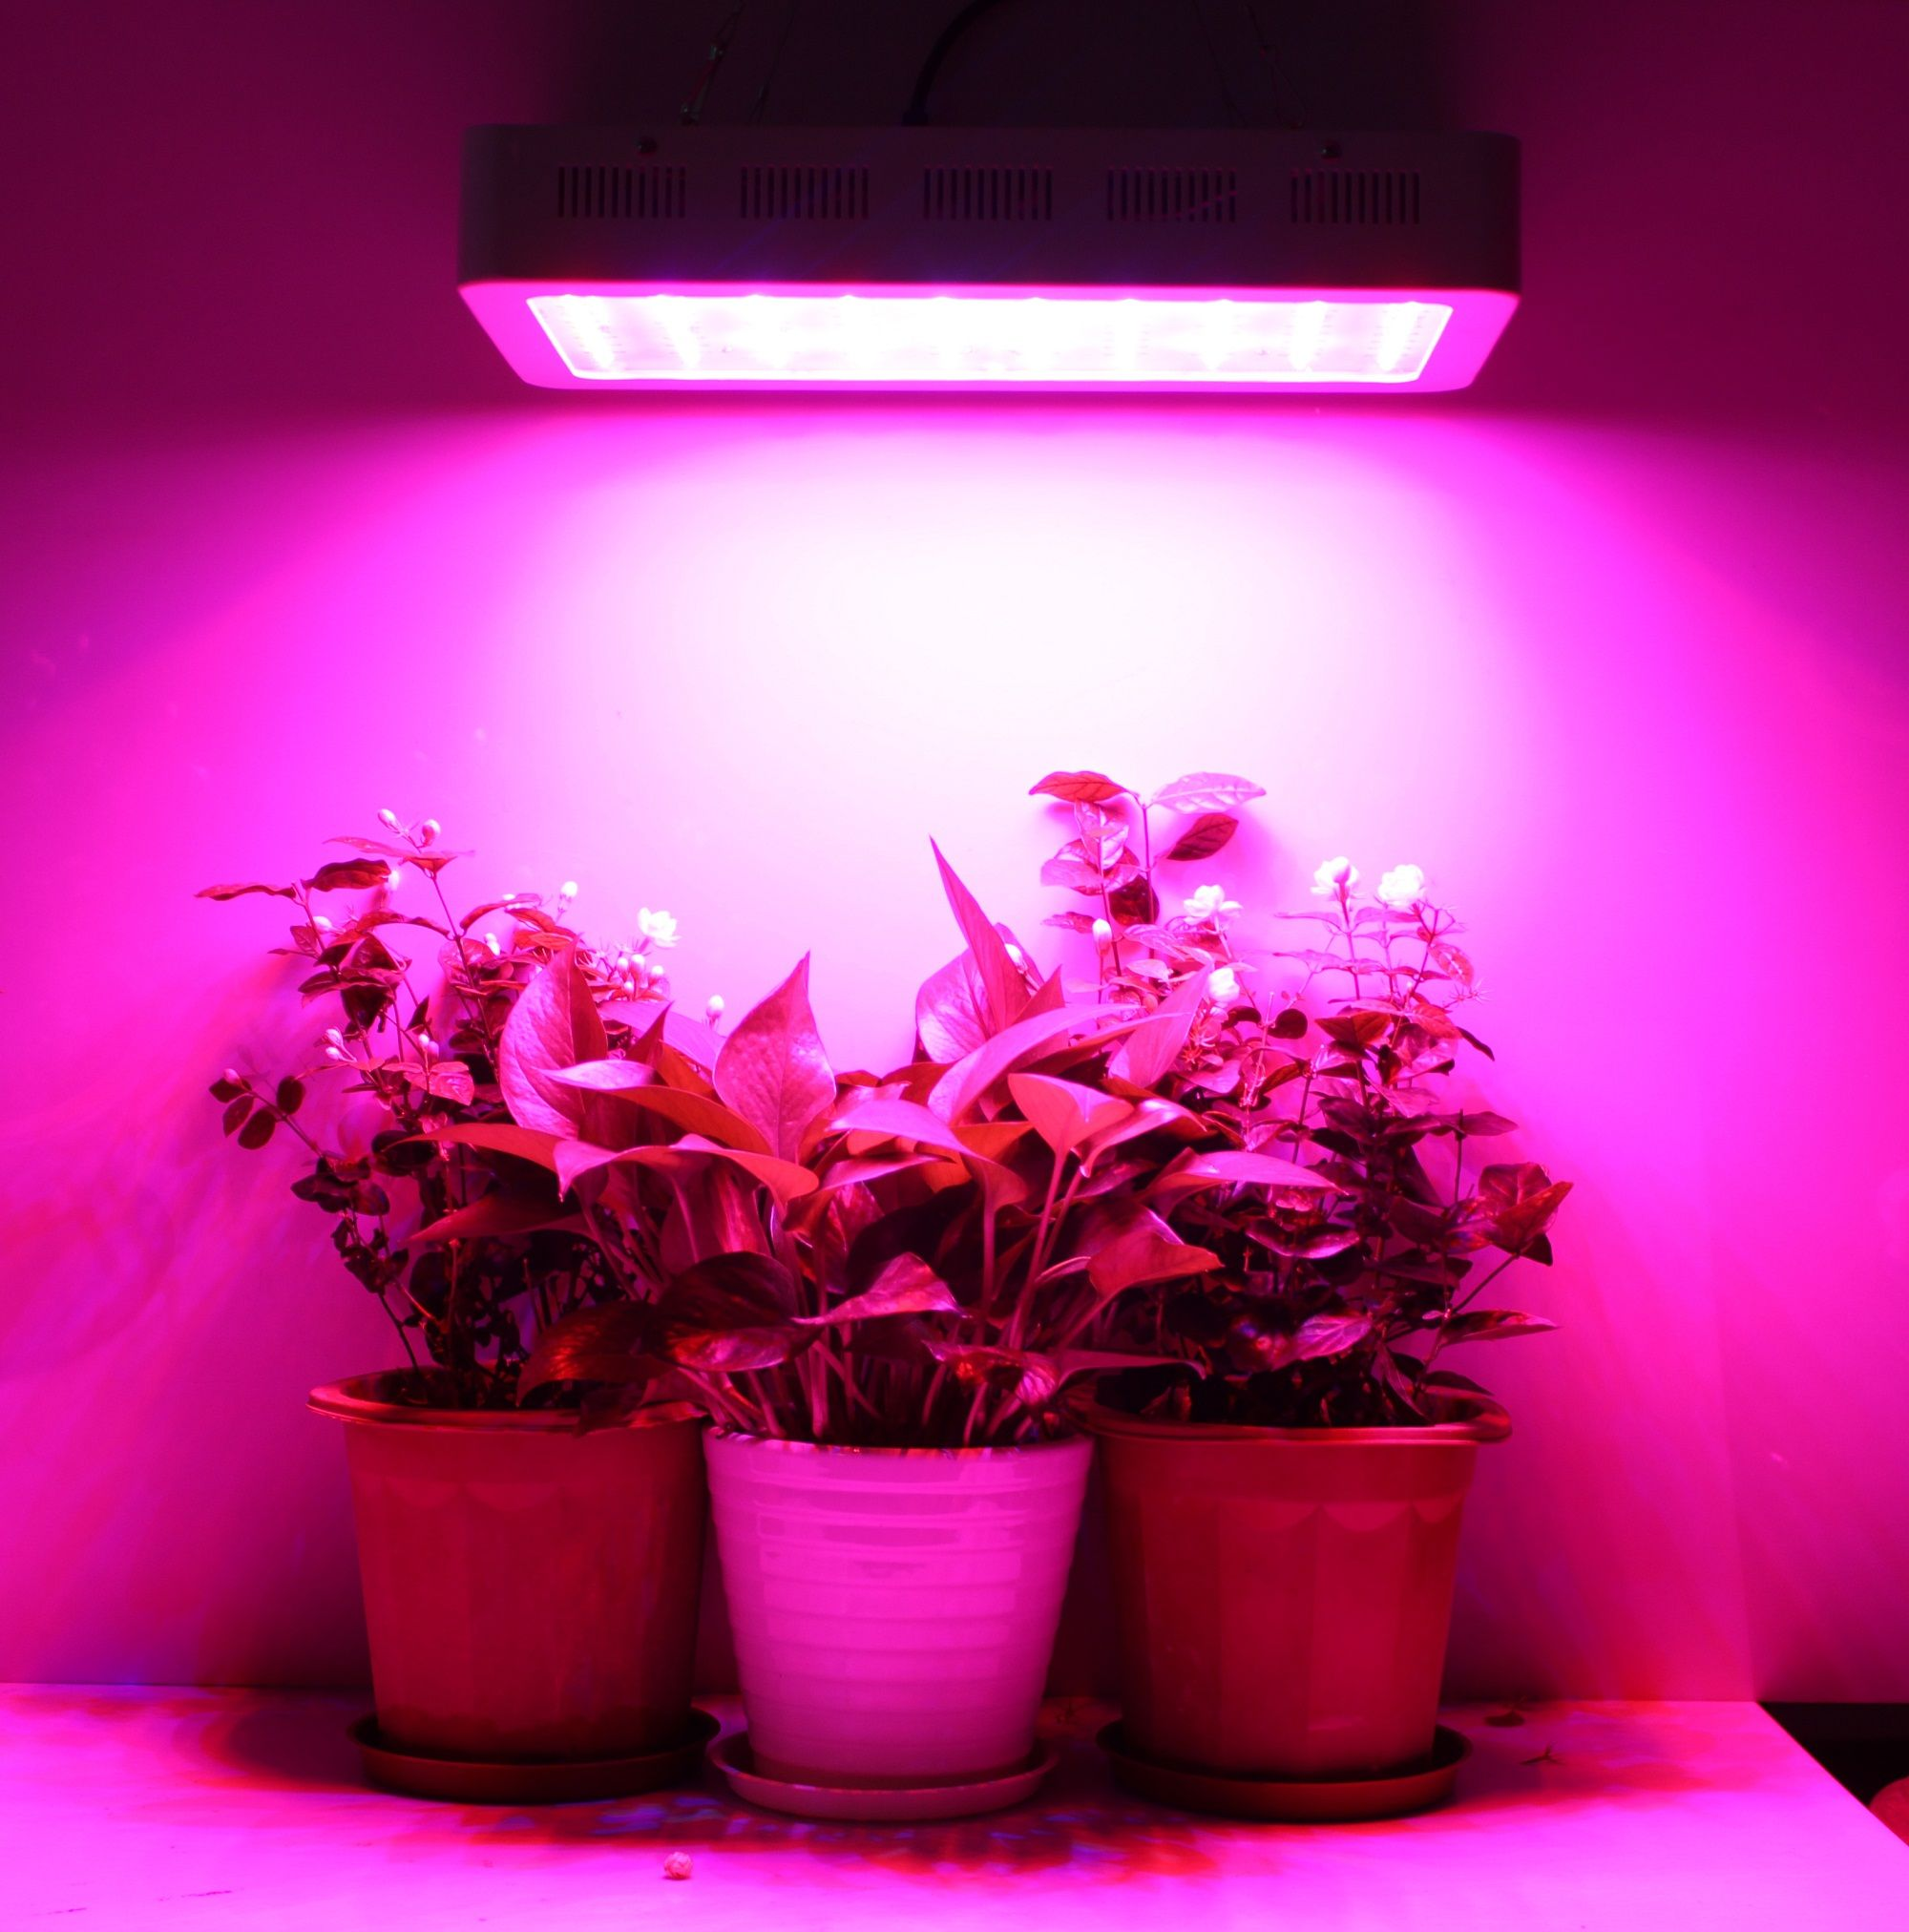 Wanna Your Plants Grow Quick And Well The Led Grow Light Is A Good Choice Led Pflanzenlampe Pflanzenlampe Pflanzenleuchte